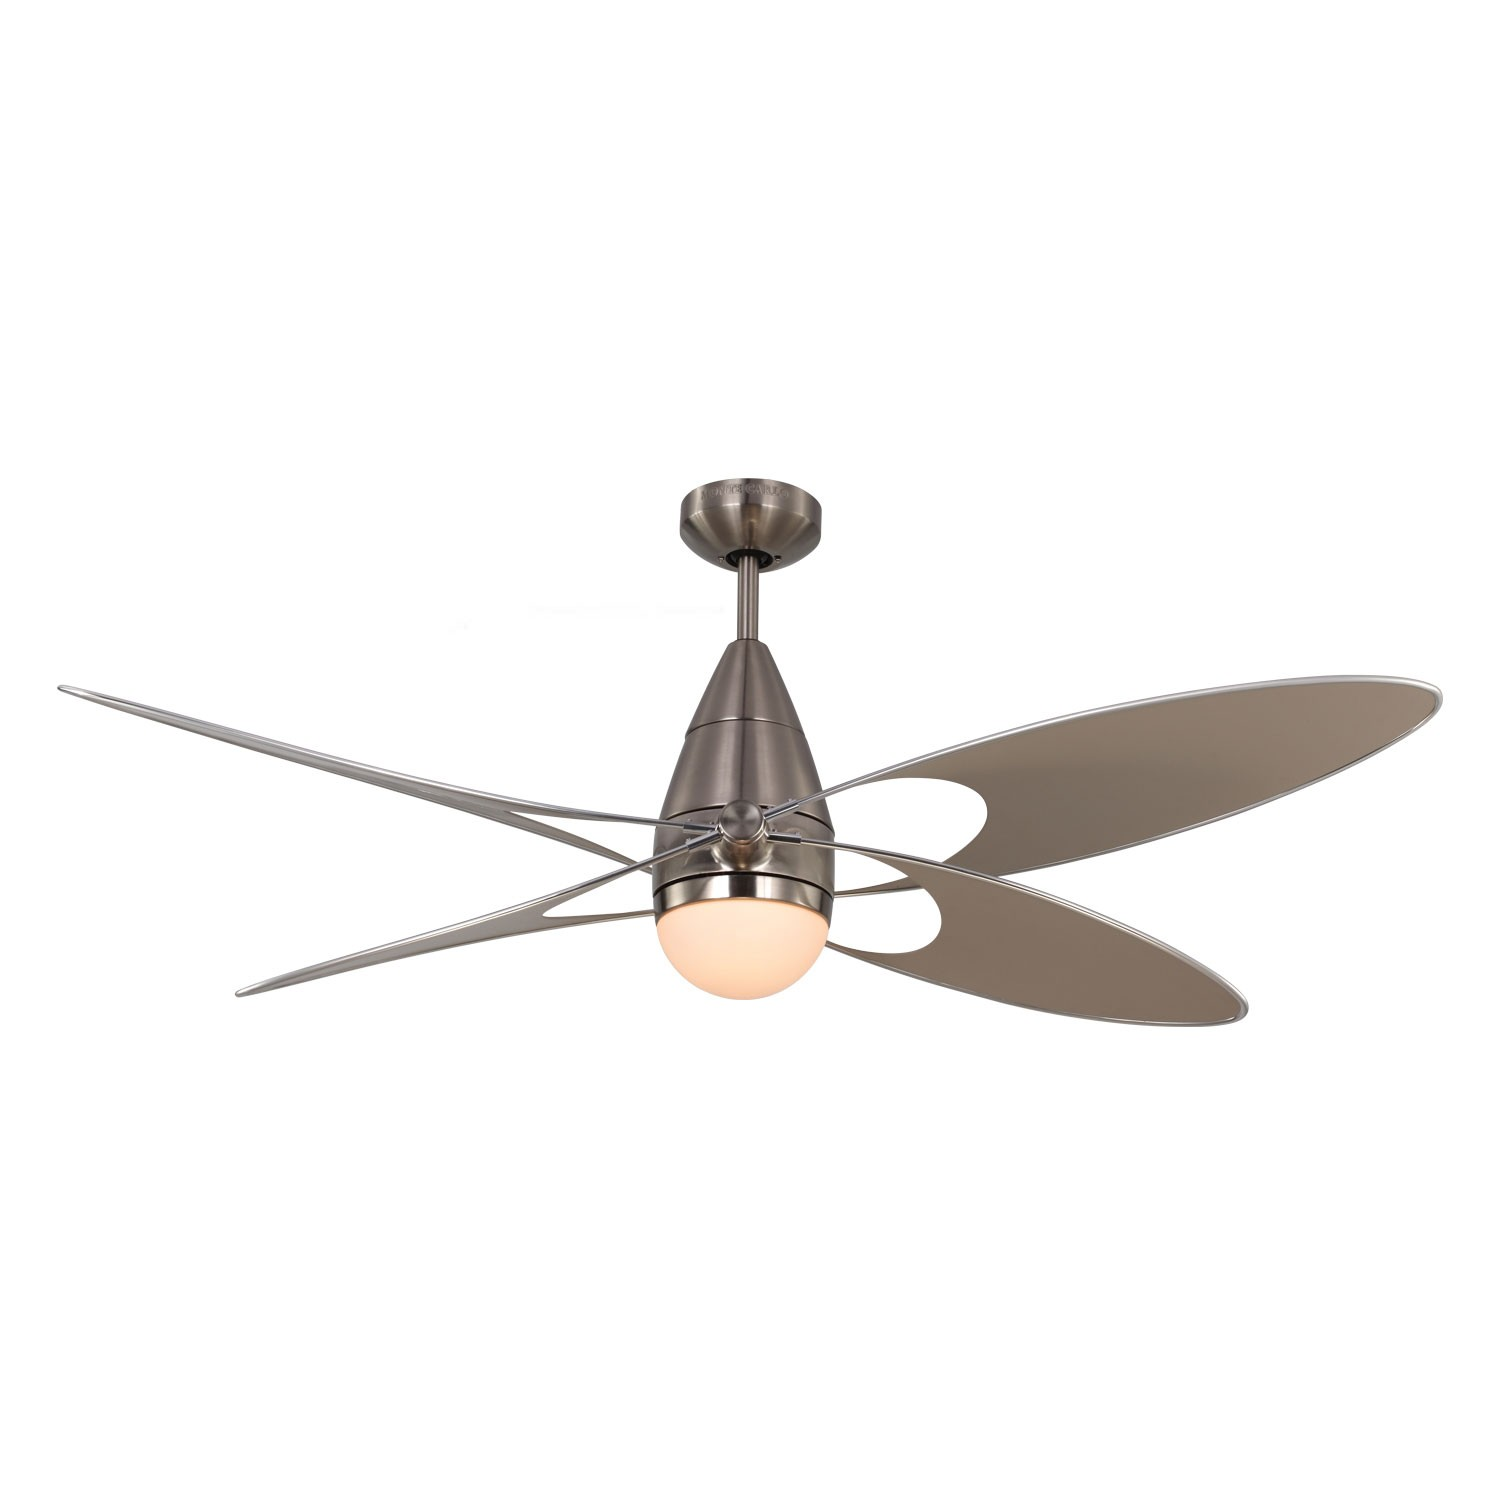 butterfly ceiling fan photo - 3